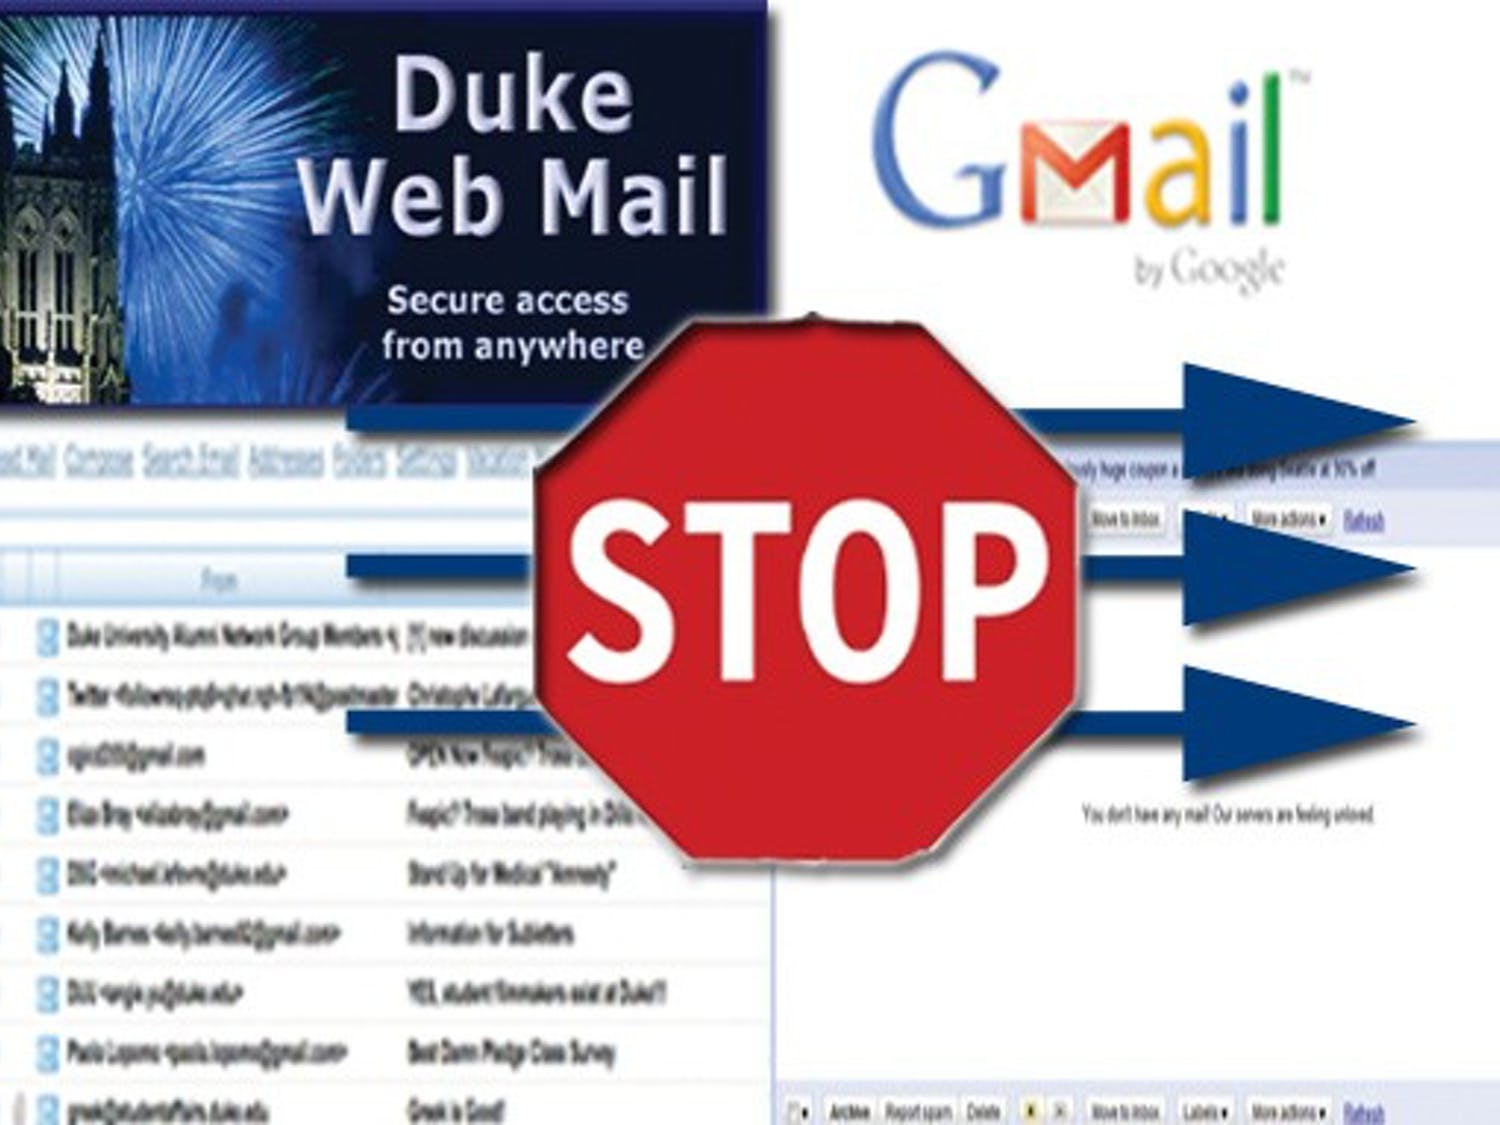 Students found their Duke WebMail failing to forward messages to their Gmail and Yahoo accounts